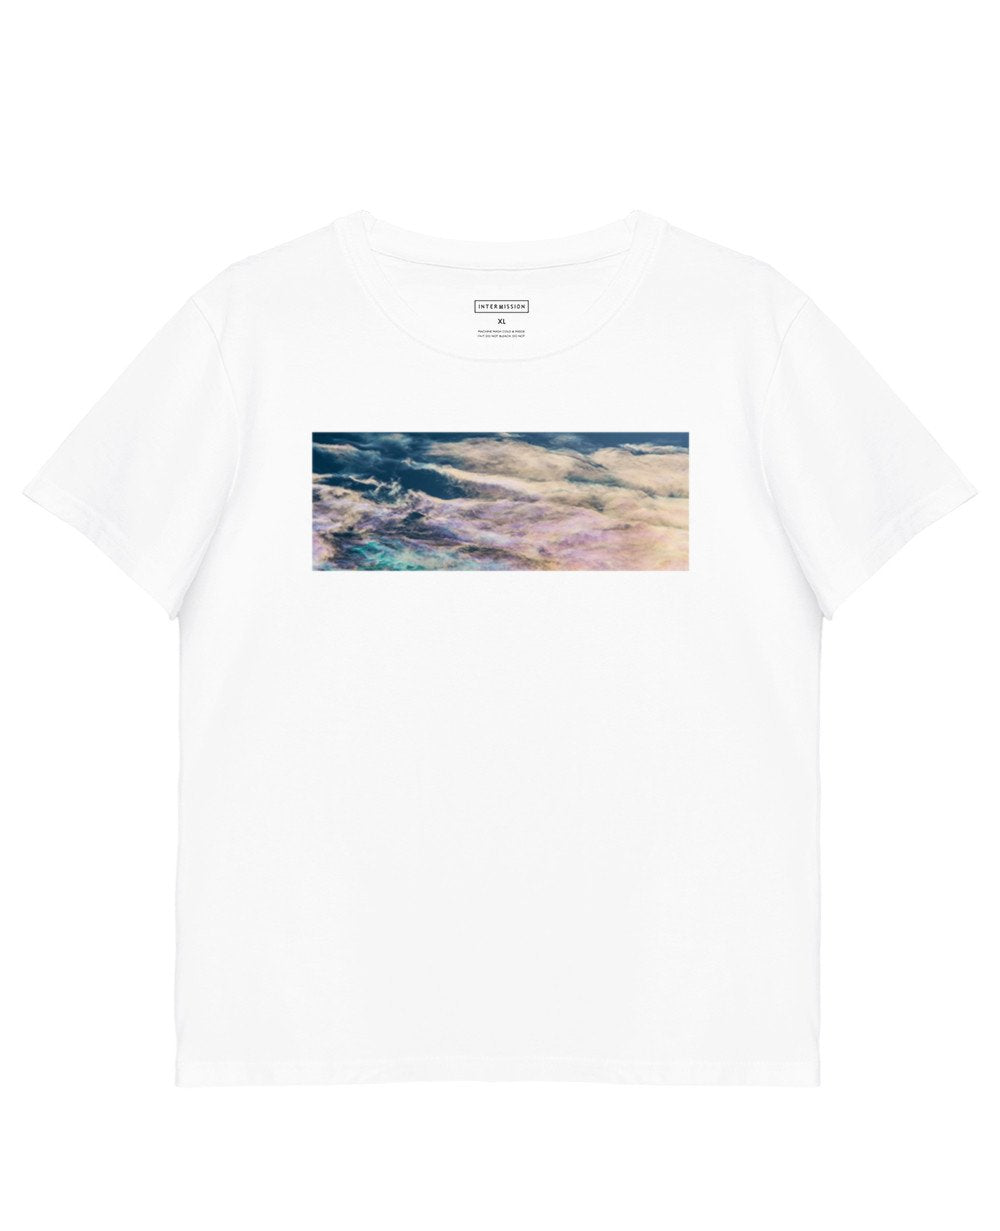 Abstract Print T-Shirt in White - T-Shirts - INTERMISSION - BRANMA